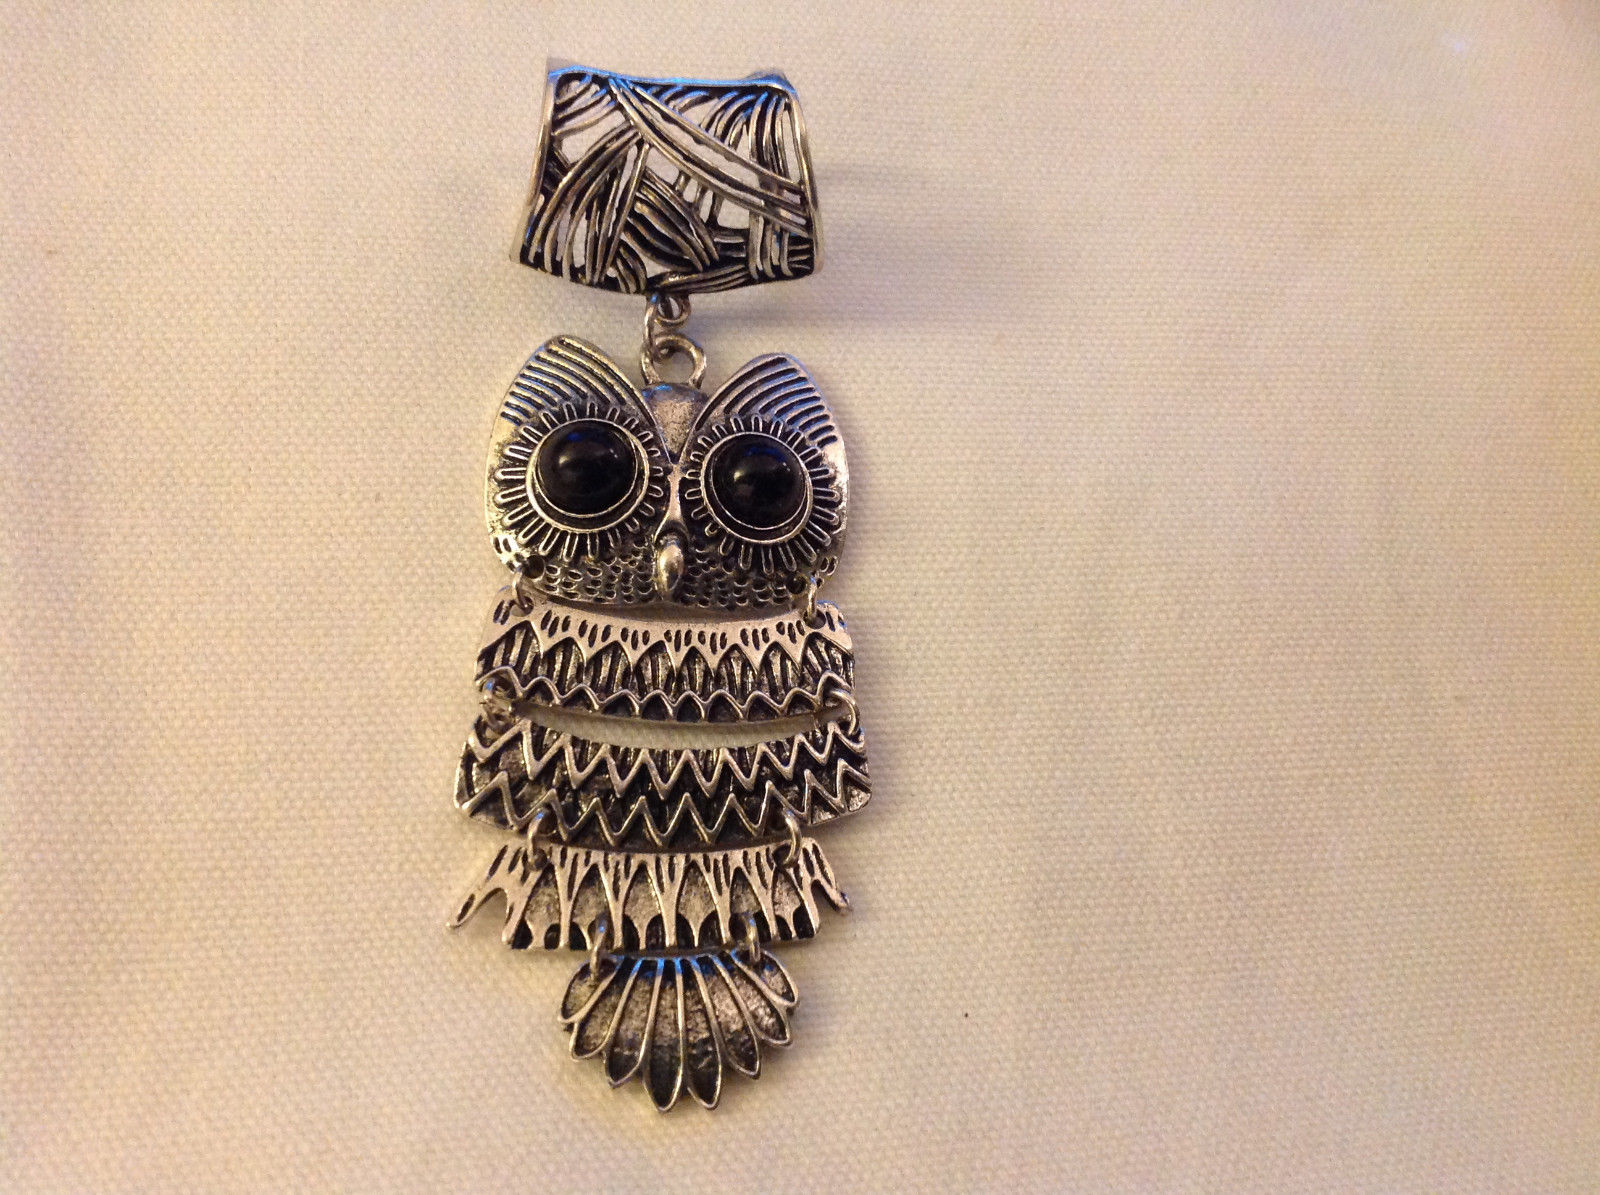 Silver Tone Owl Black Stones for Eyes Scarf Pendant 2 Inches Wide 4 Inches Long